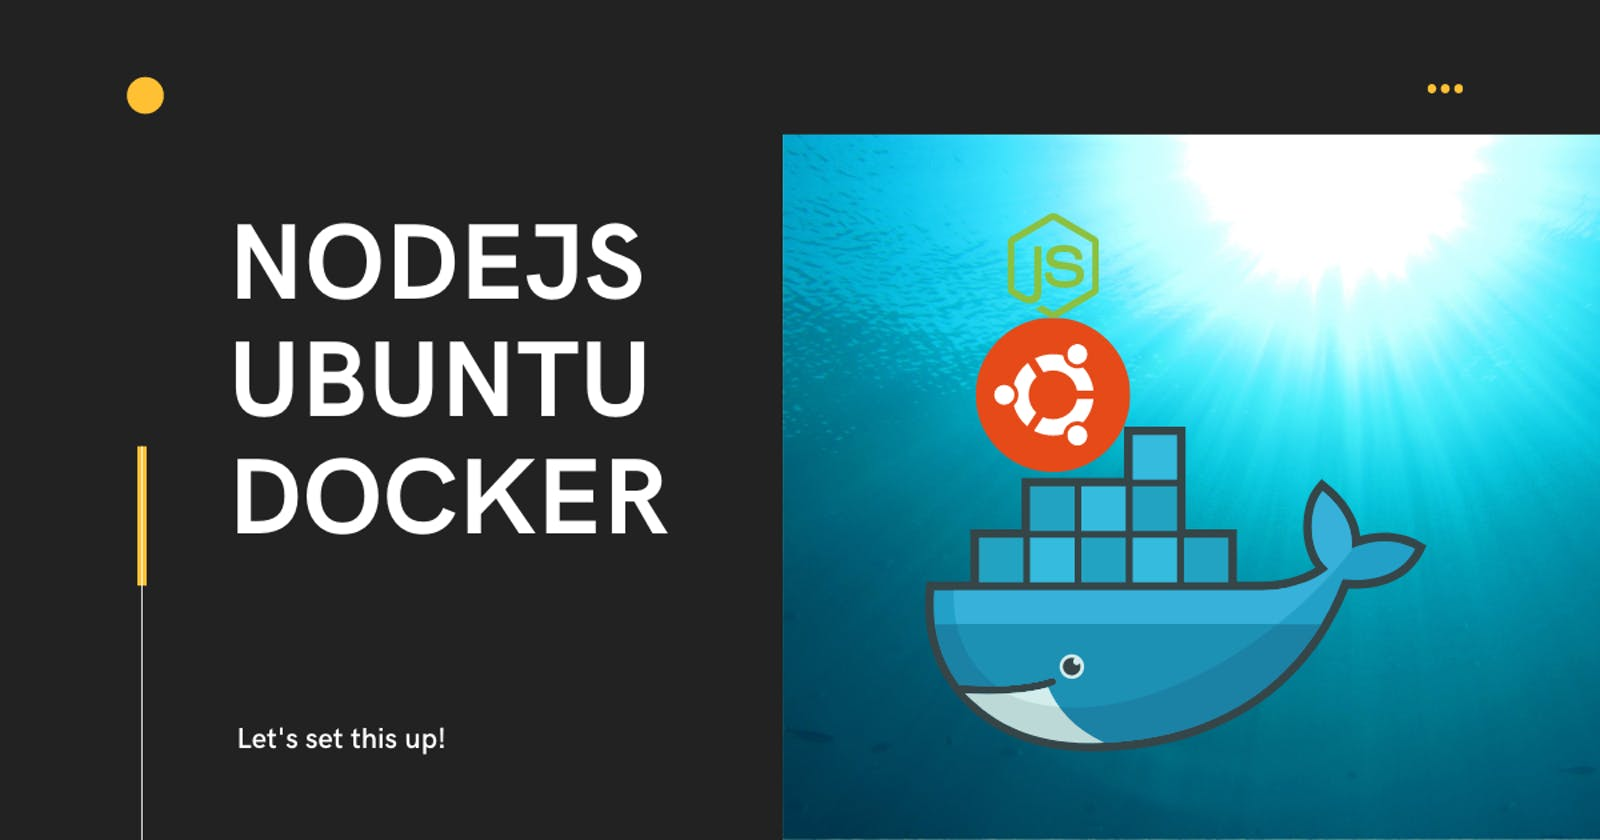 Setting up a New Ubuntu Docker Container for NodeJS